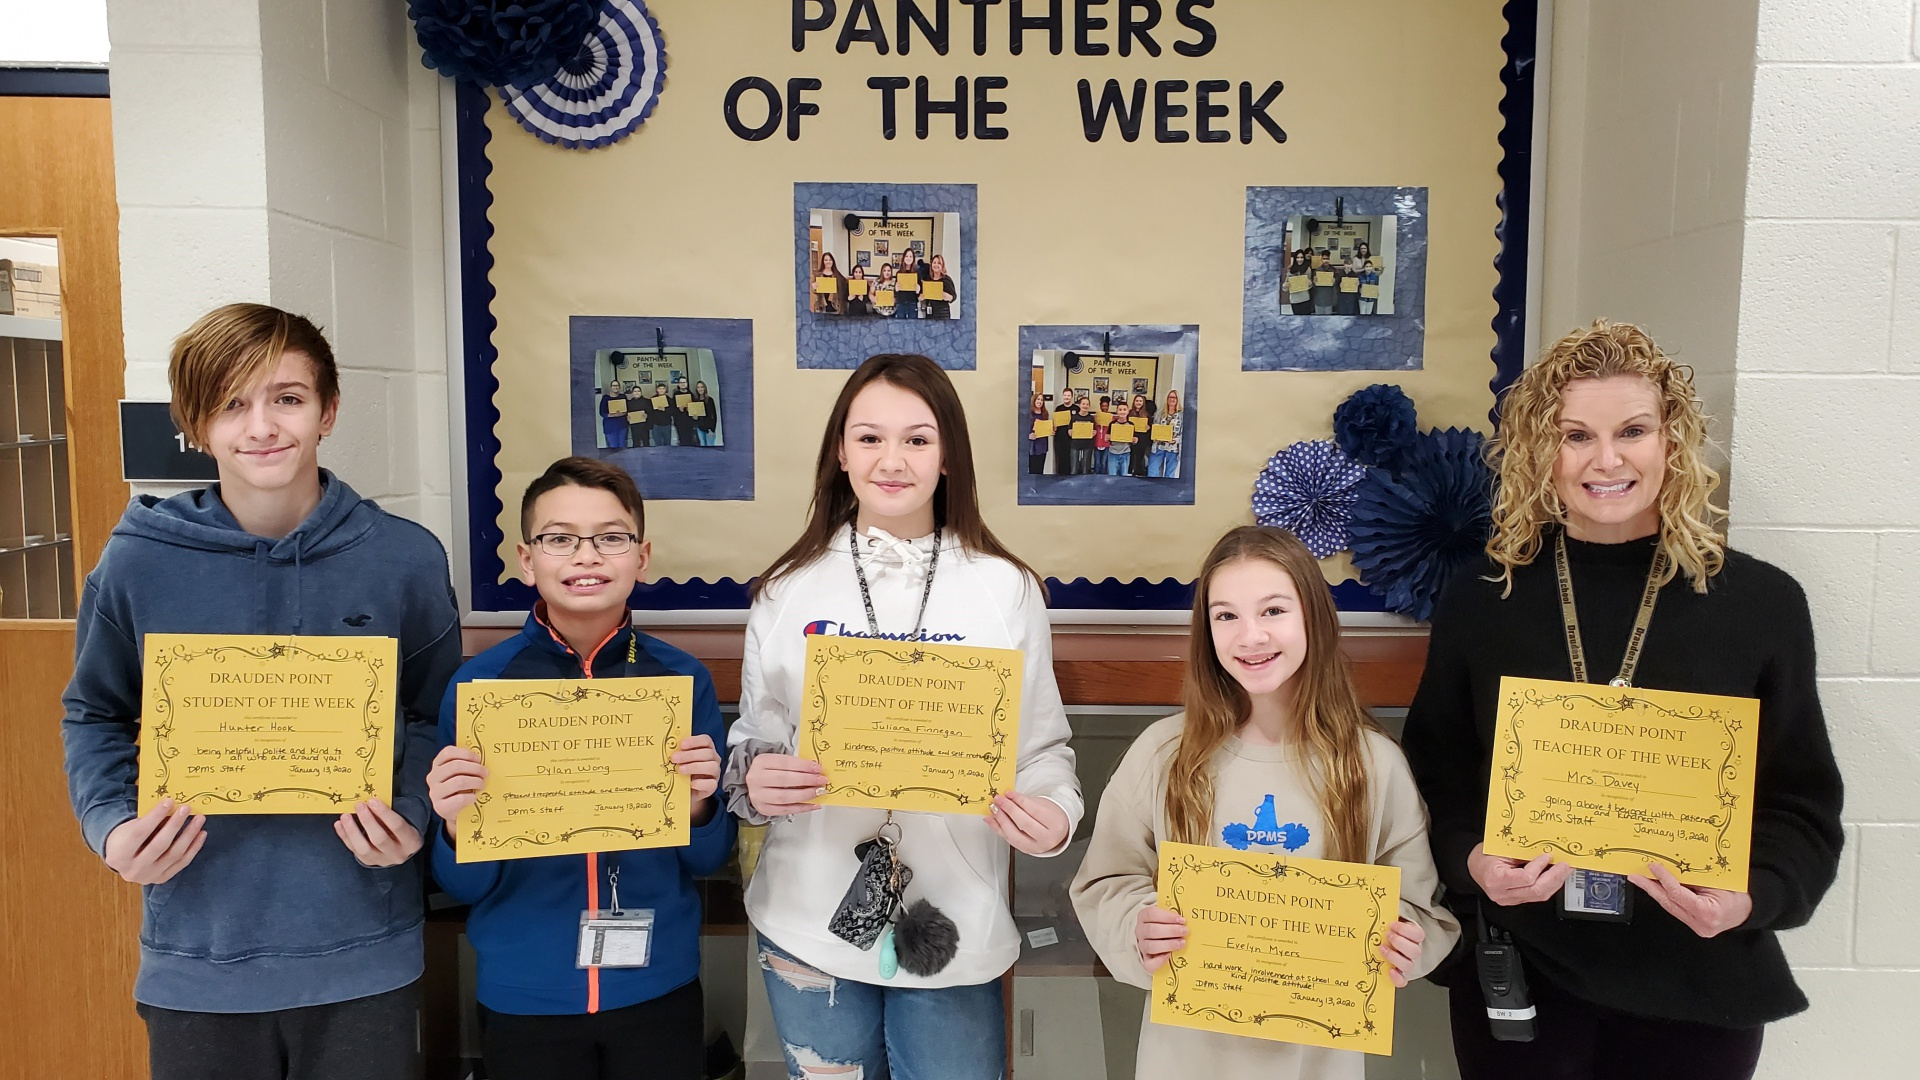 January 13, Staff and Students of the Week